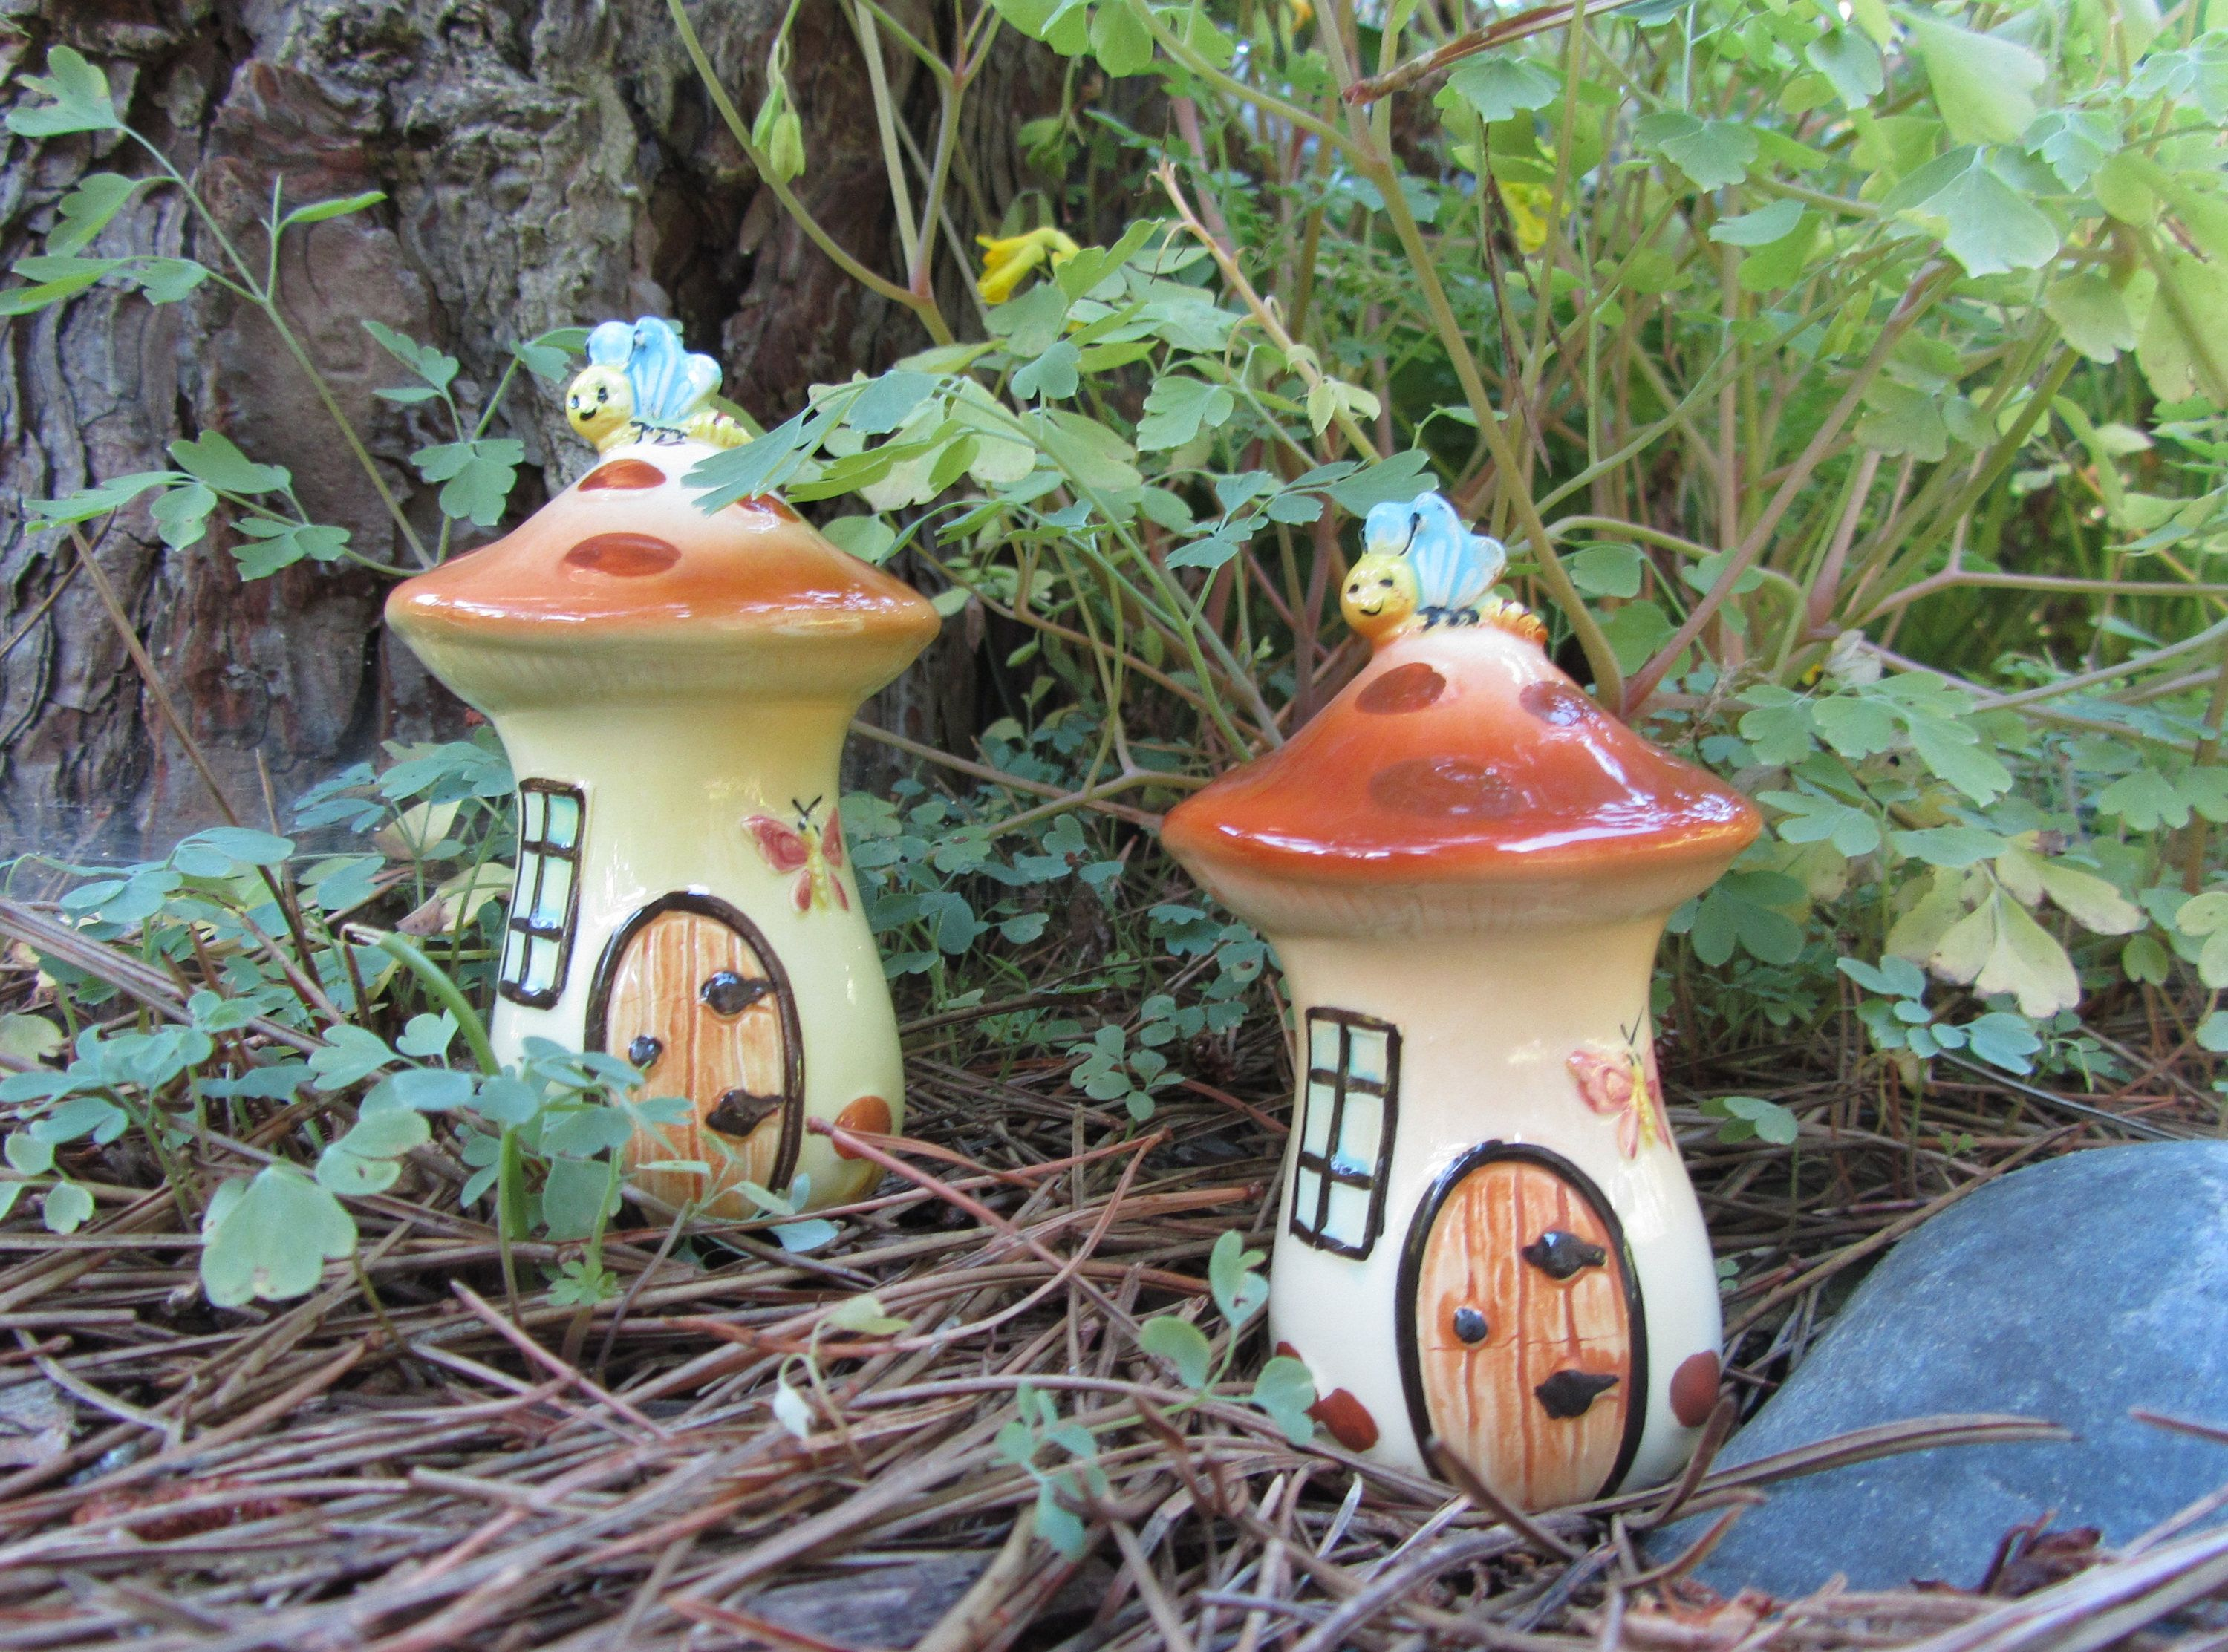 Small Crop Of Mushroom Fairy Garden